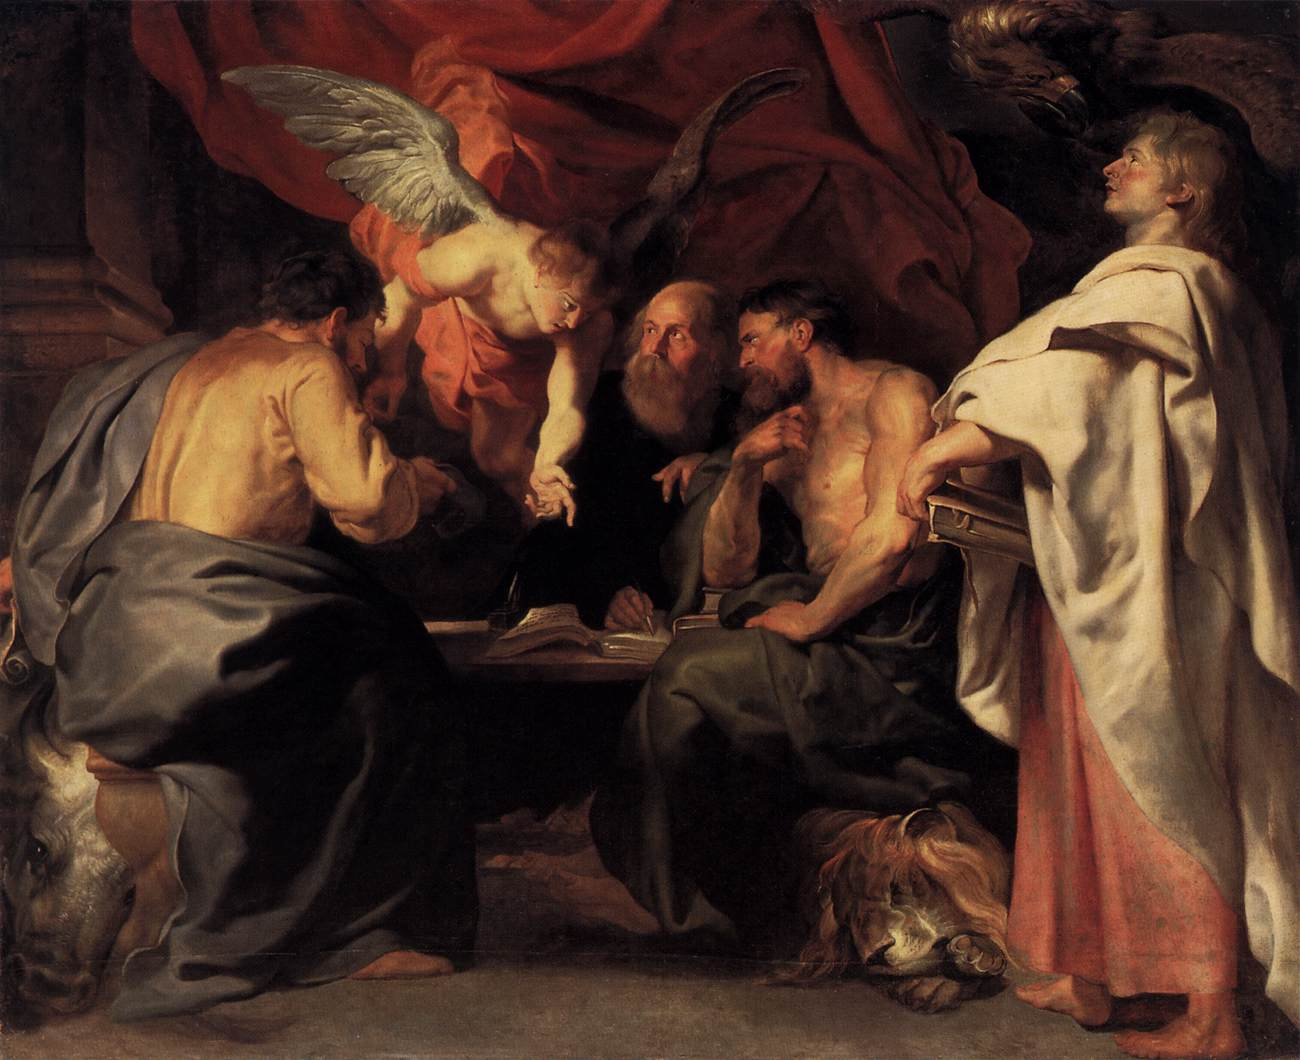 The Four Evangelists by Peter Paul Rubens Reproduction Oil Painting on Canvas